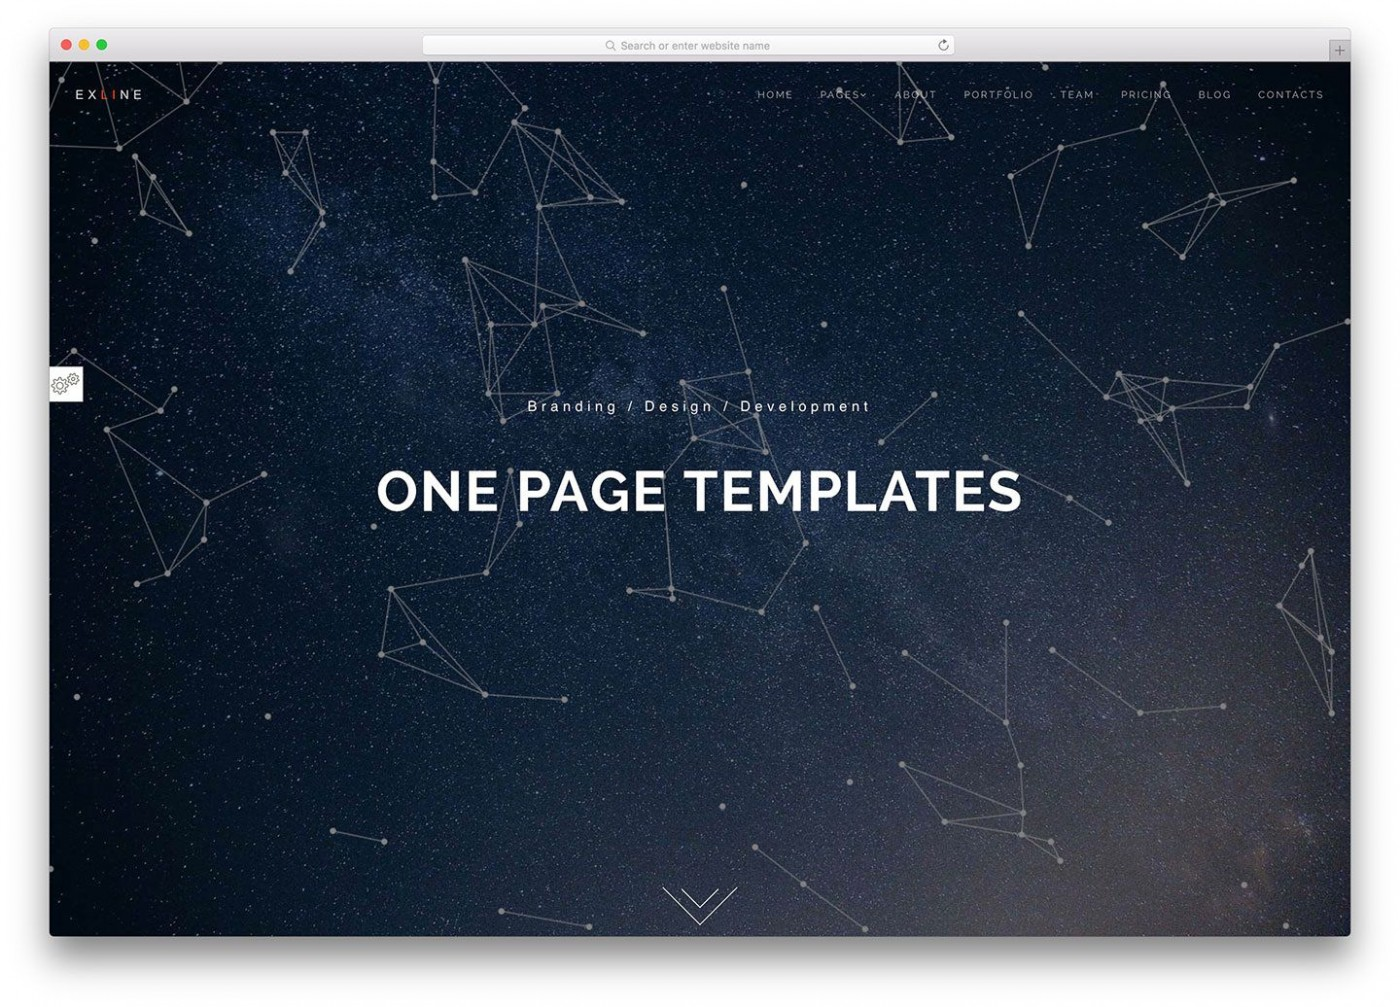 008 Archaicawful One Page Website Template Free Download Bootstrap Photo 1400